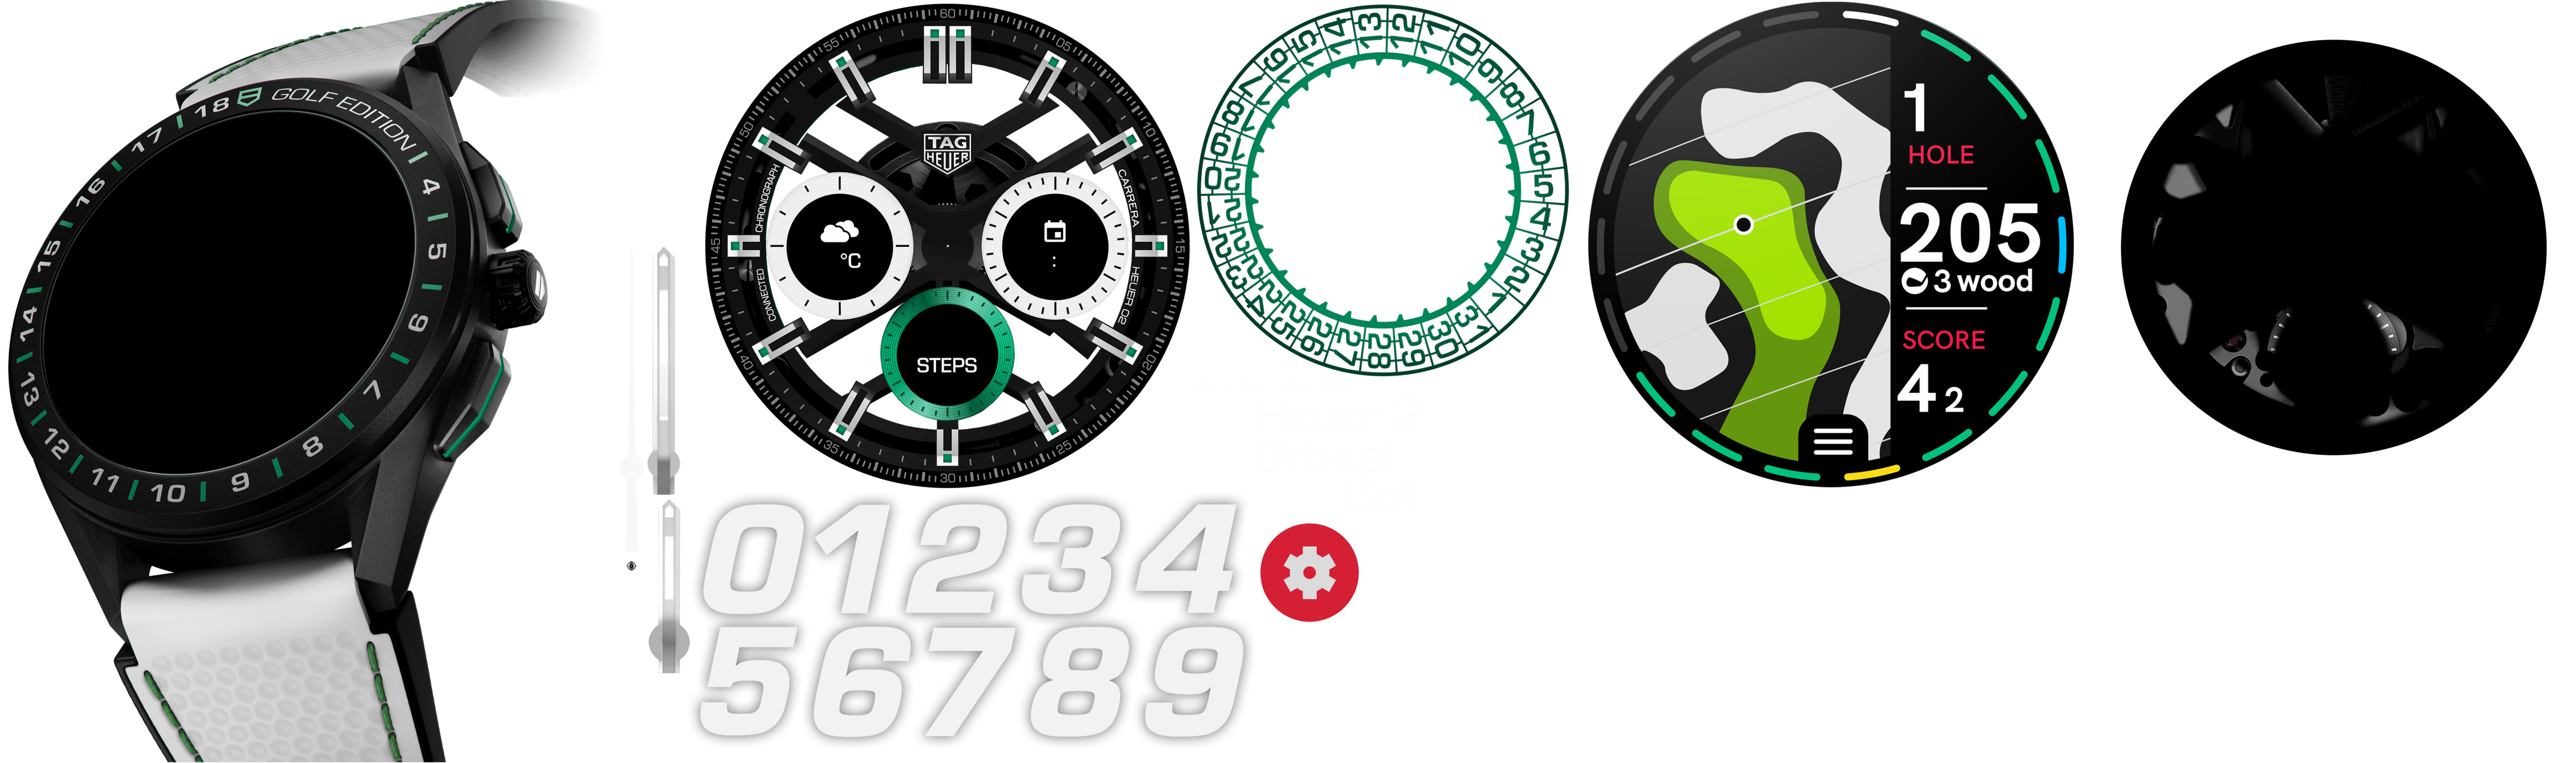 TAG Heuer Connected Golf Edition - SBG8A82.EB0206